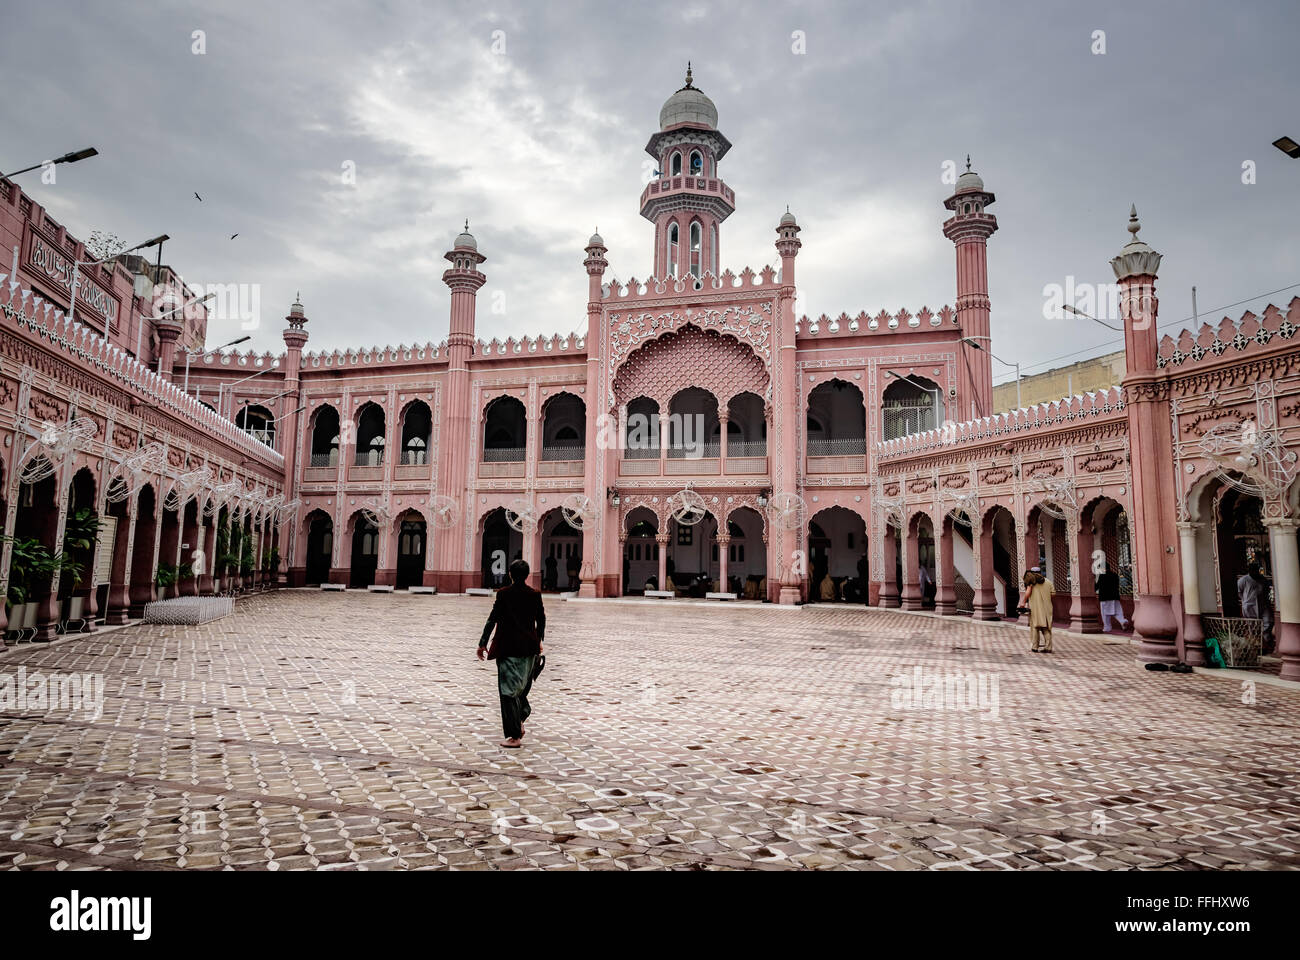 Courtyard of Sunehri mosque in the historic city of Peshawar, Pakistan. - Stock Image